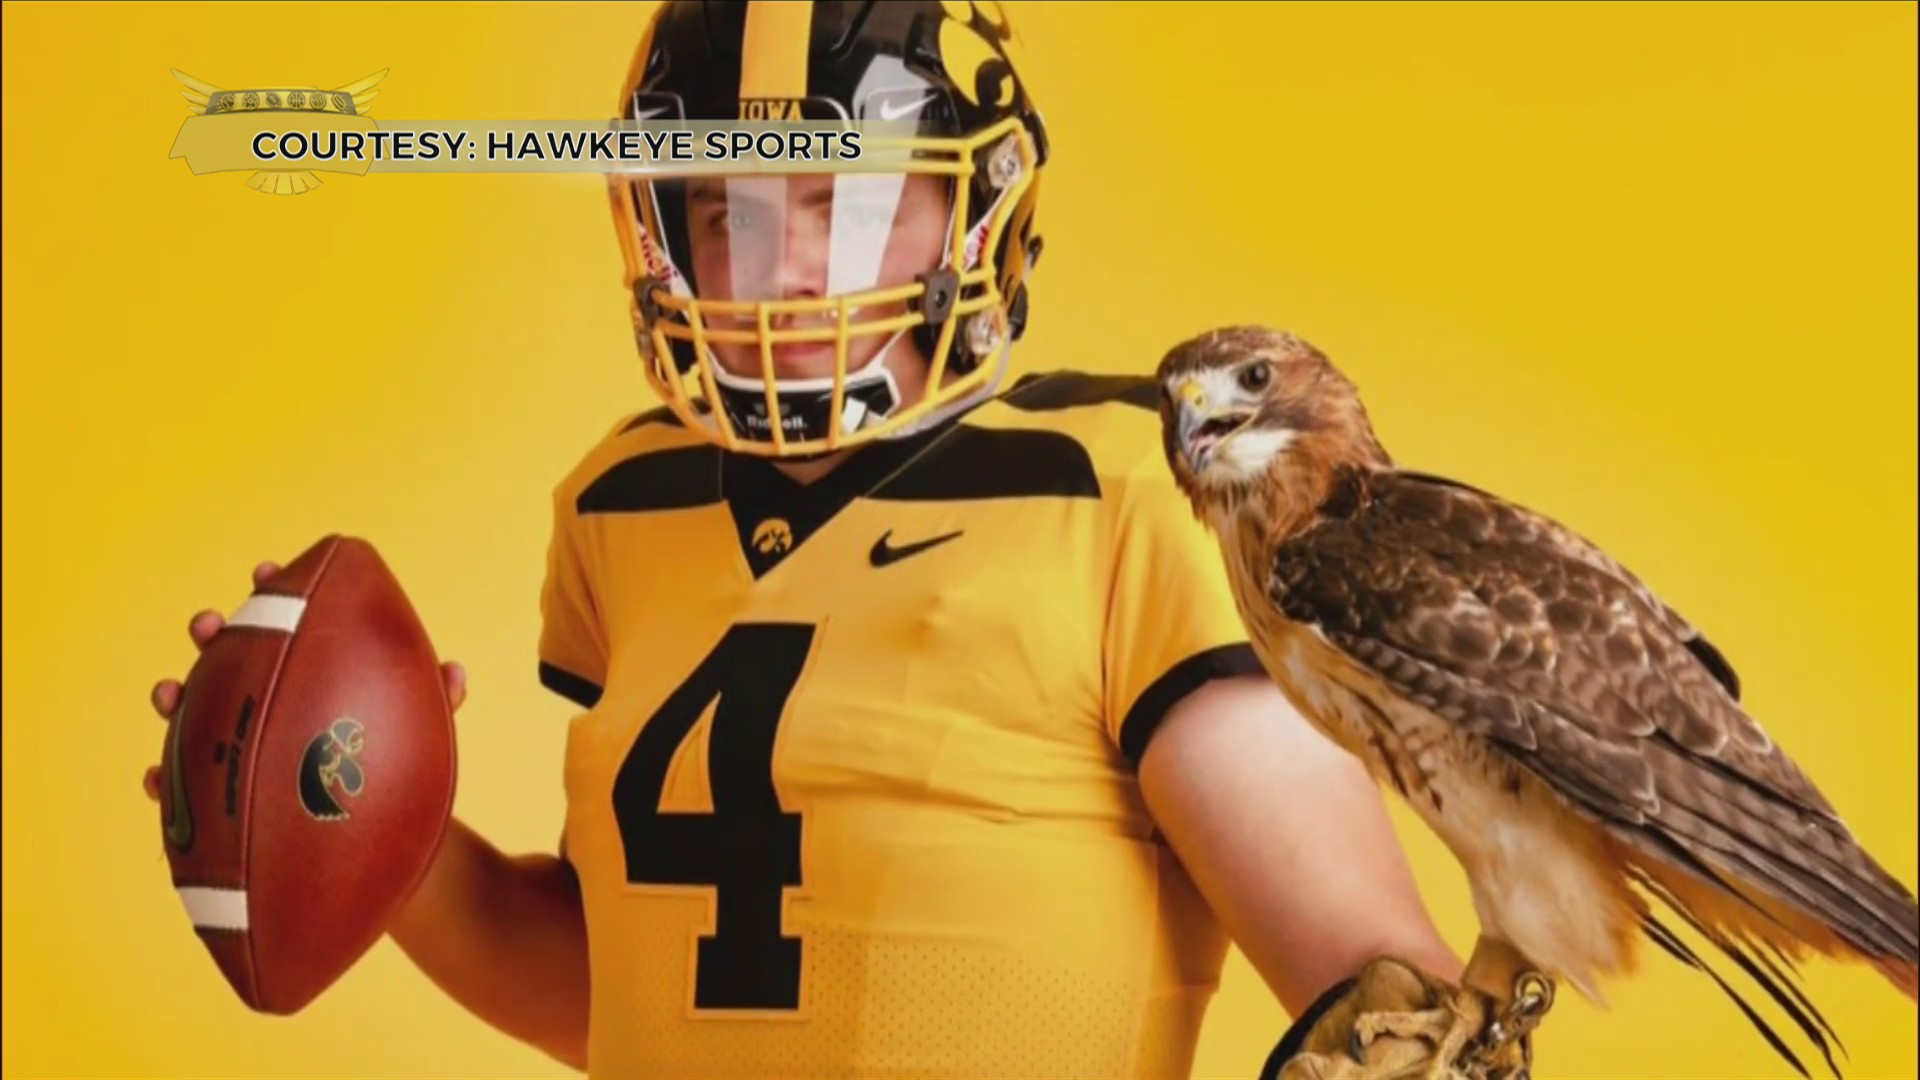 new concept dafce 29a55 New uniforms a 'boost' for Hawkeyes | OurQuadCities